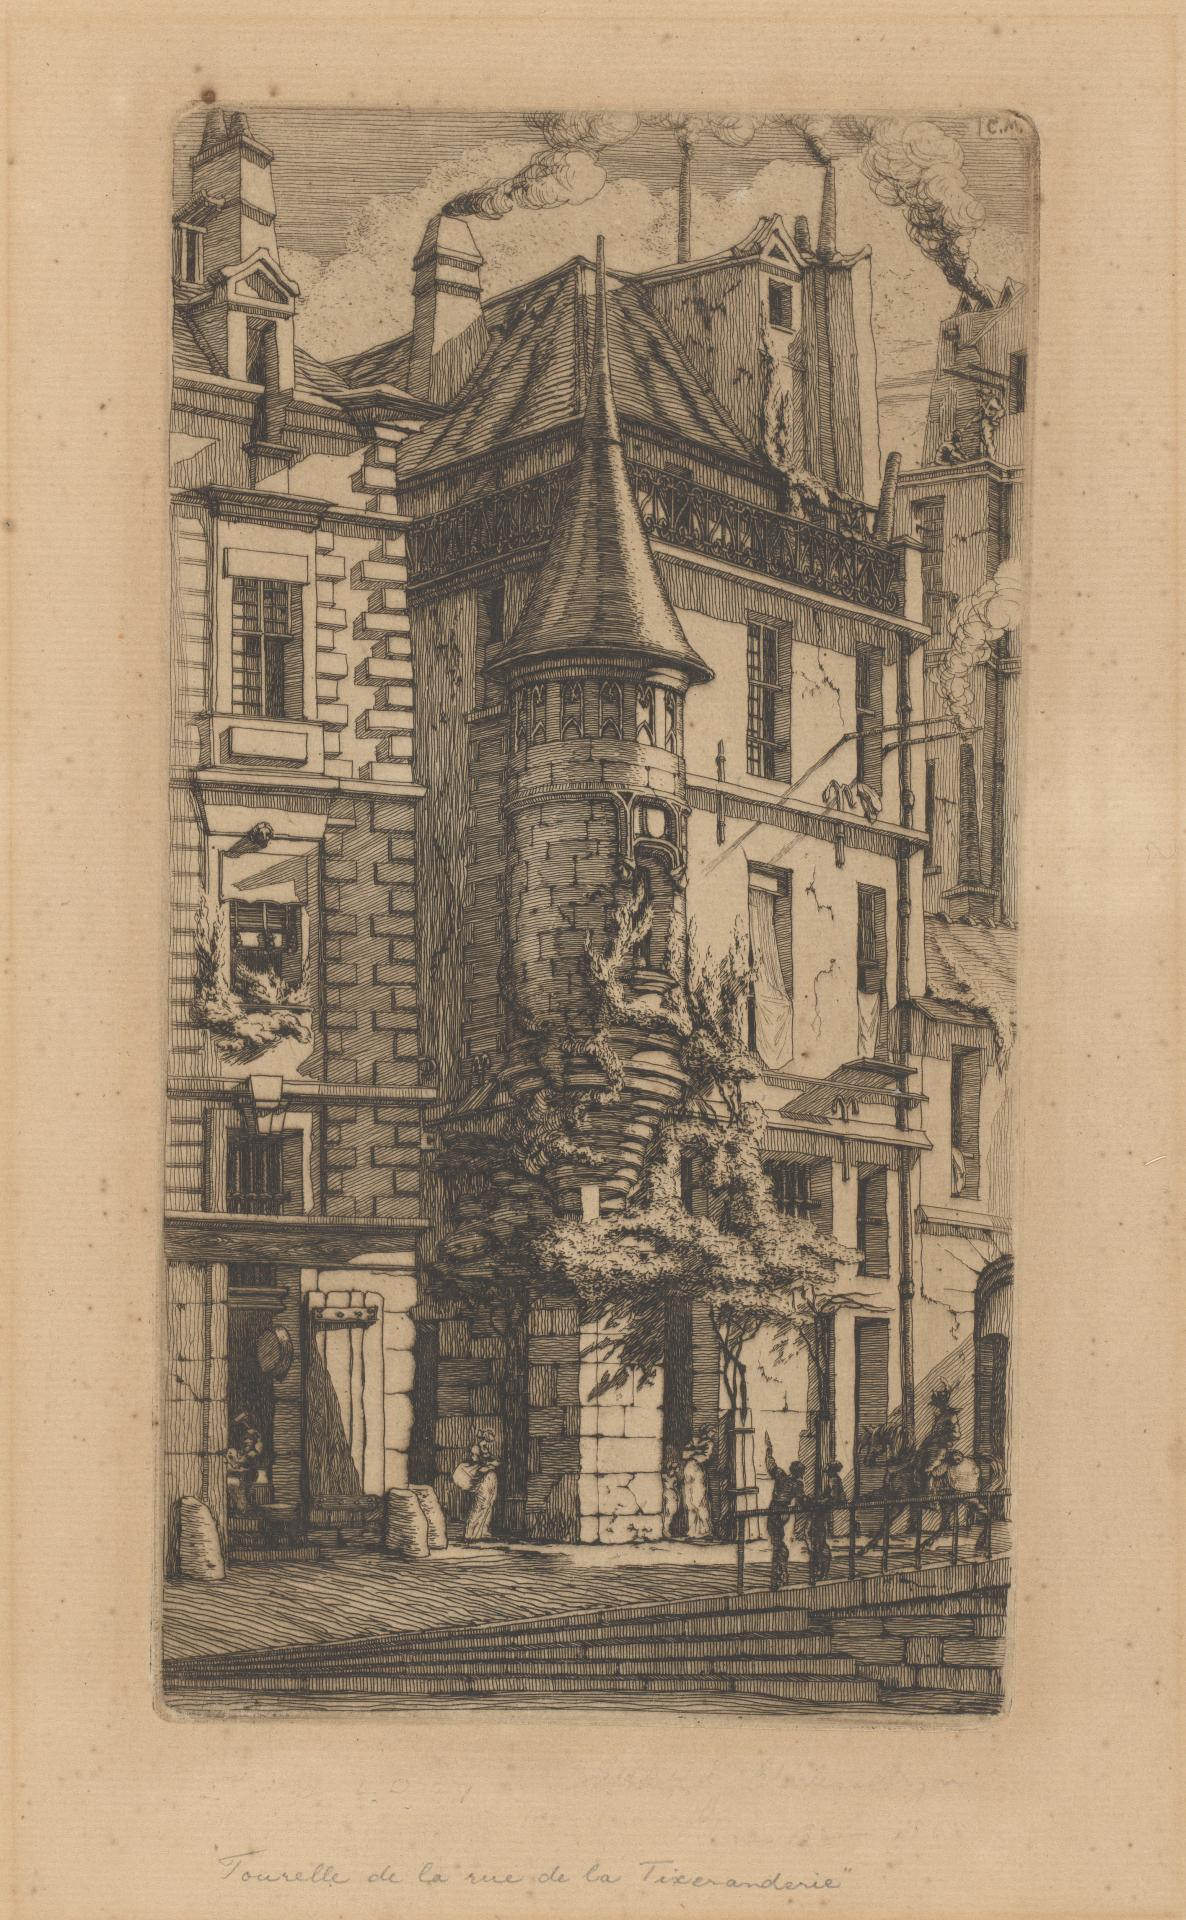 House with a Turret, Weaver's Street, Paris